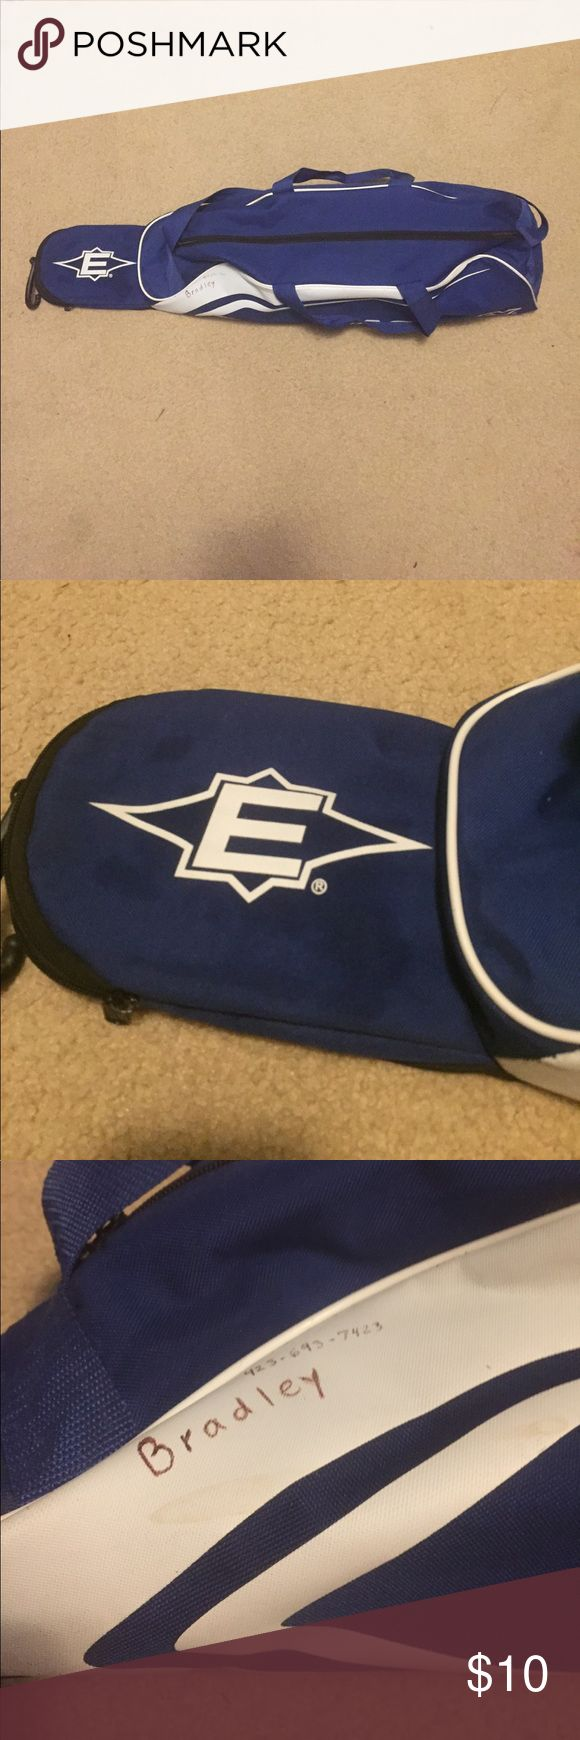 Baseball equipment bag Has been used. Has some dirt stains from use. A name has also been written on it. Other than that it is in good condition. No tears or holes. Open to price offers and trades. Easton Bags